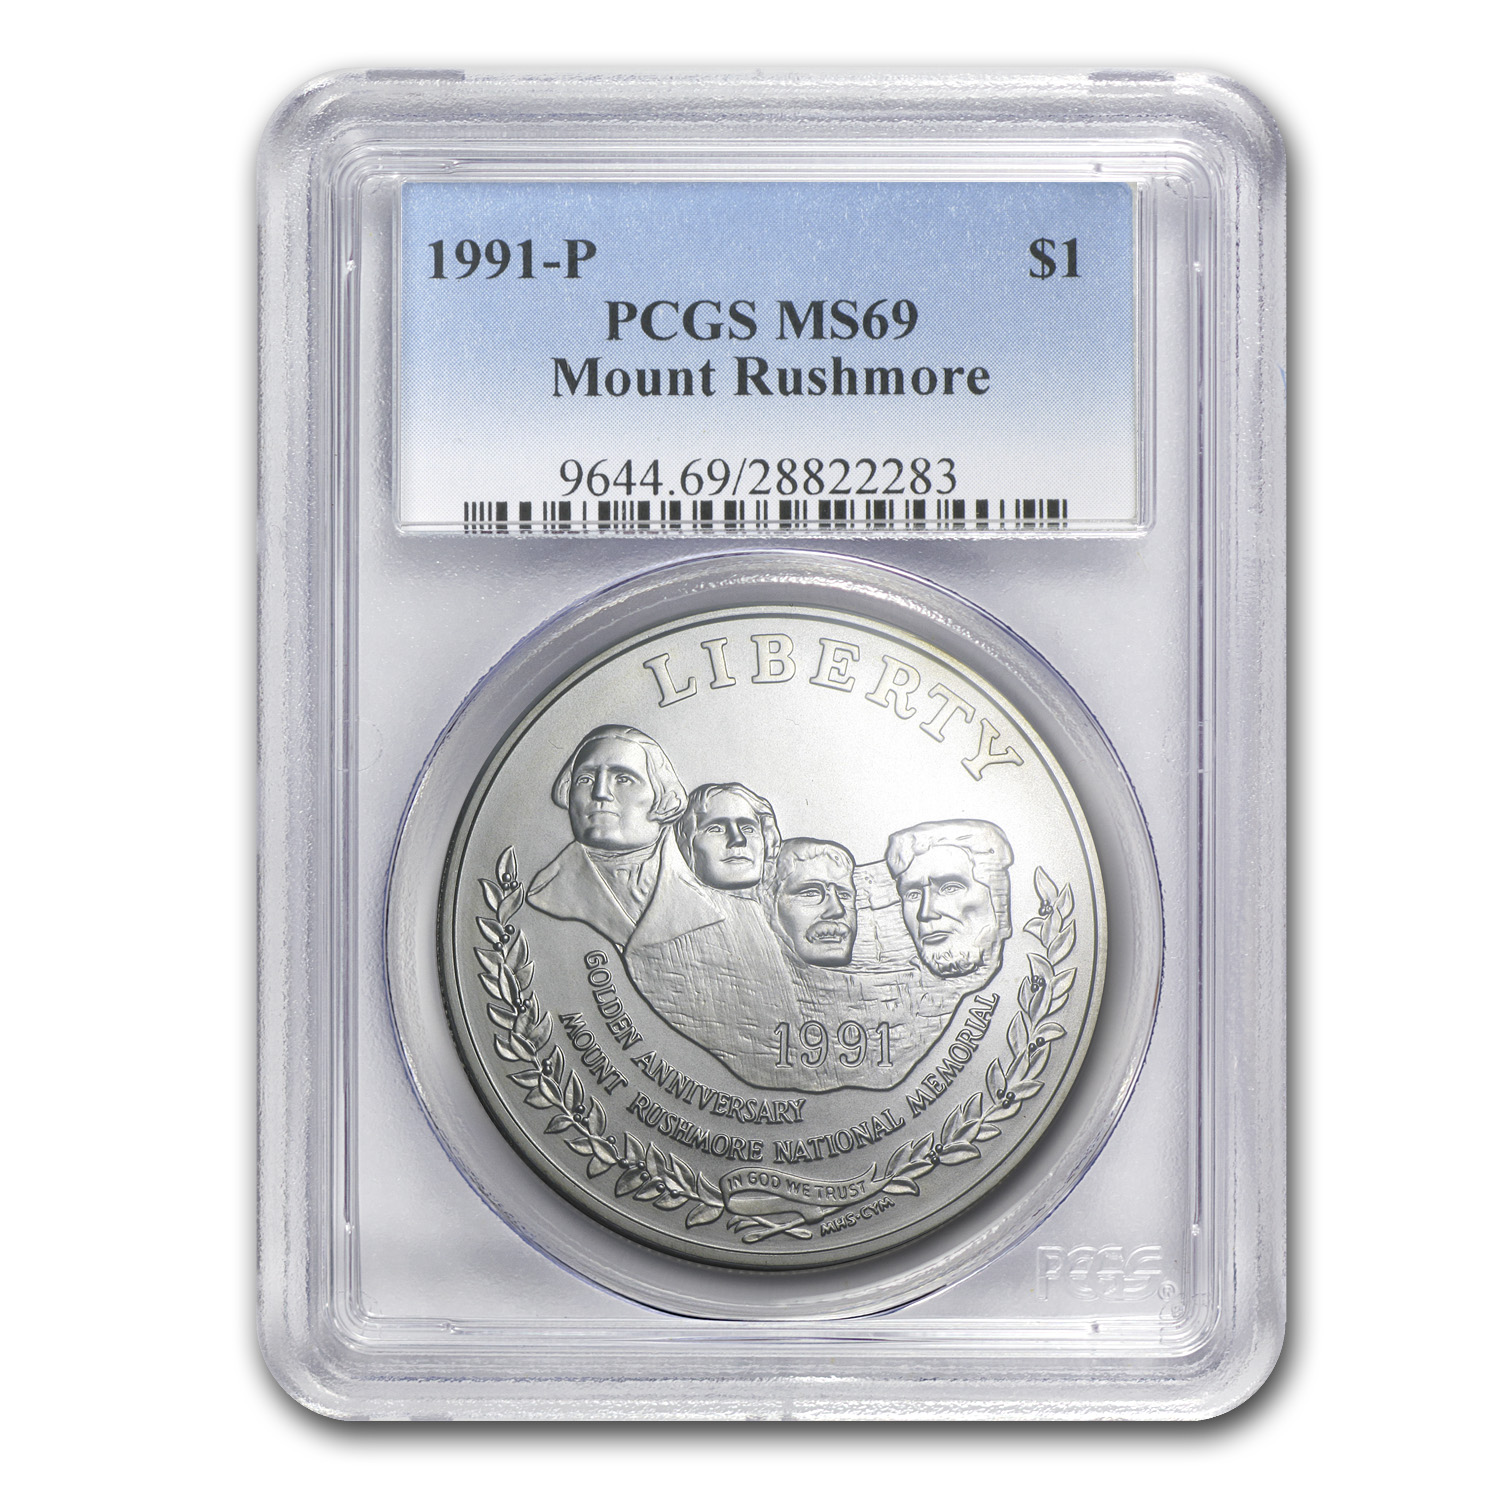 1991-P Mount Rushmore $1 Silver Commem MS-69 PCGS